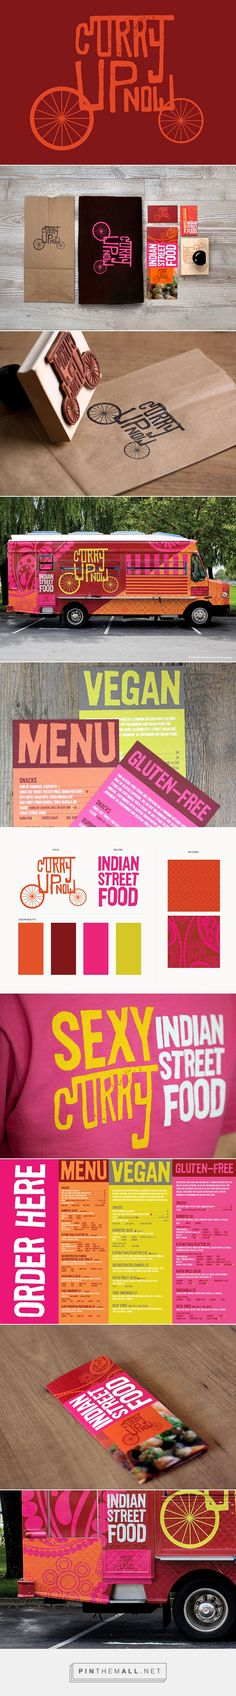 Curry Up Now Branding, Restaurant & Food Truck Design on Behance - created via https://pinthemall.net